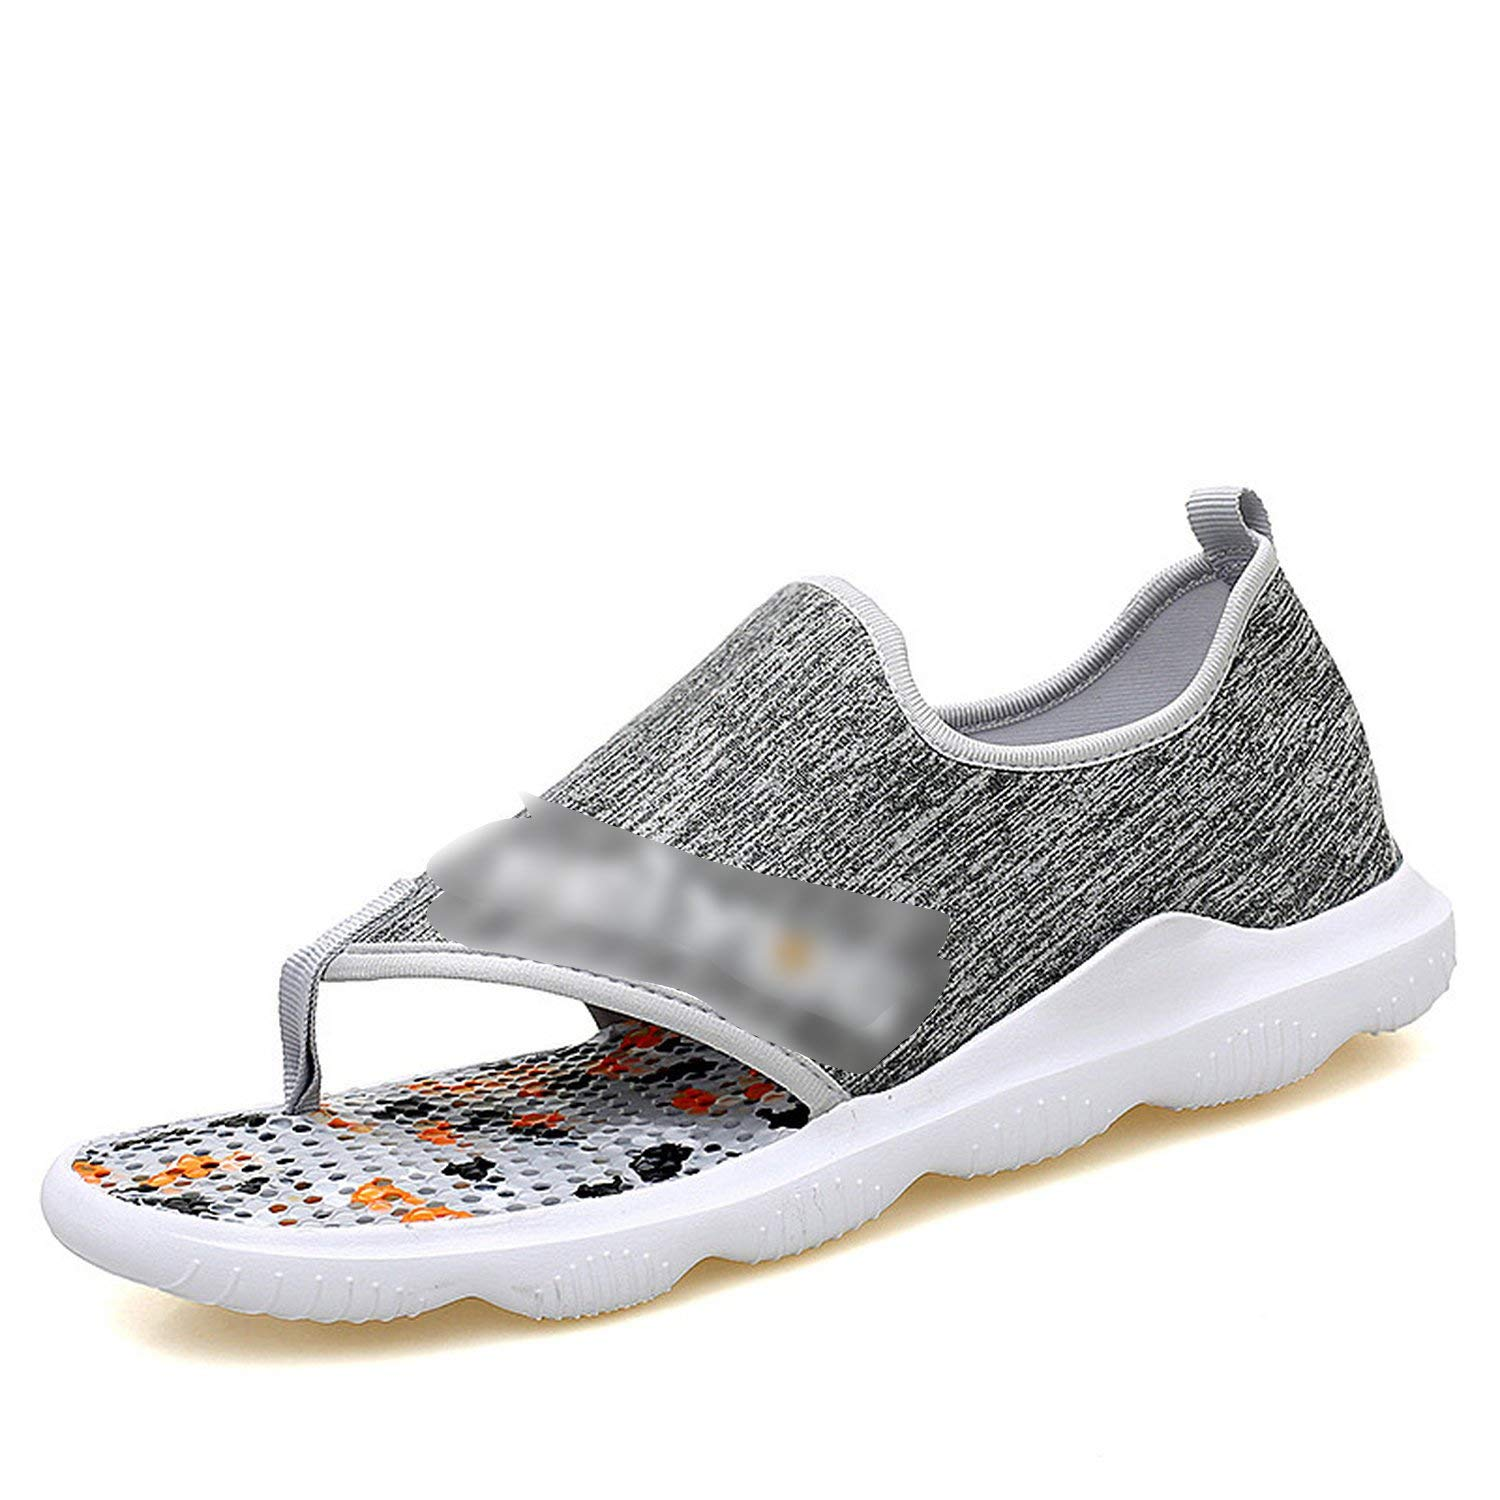 bfb981c7ea6468 Wonderful-Girls-Show Men Casual Sandals Trends Loafer Shoes Slip-on  Comfortable Flat